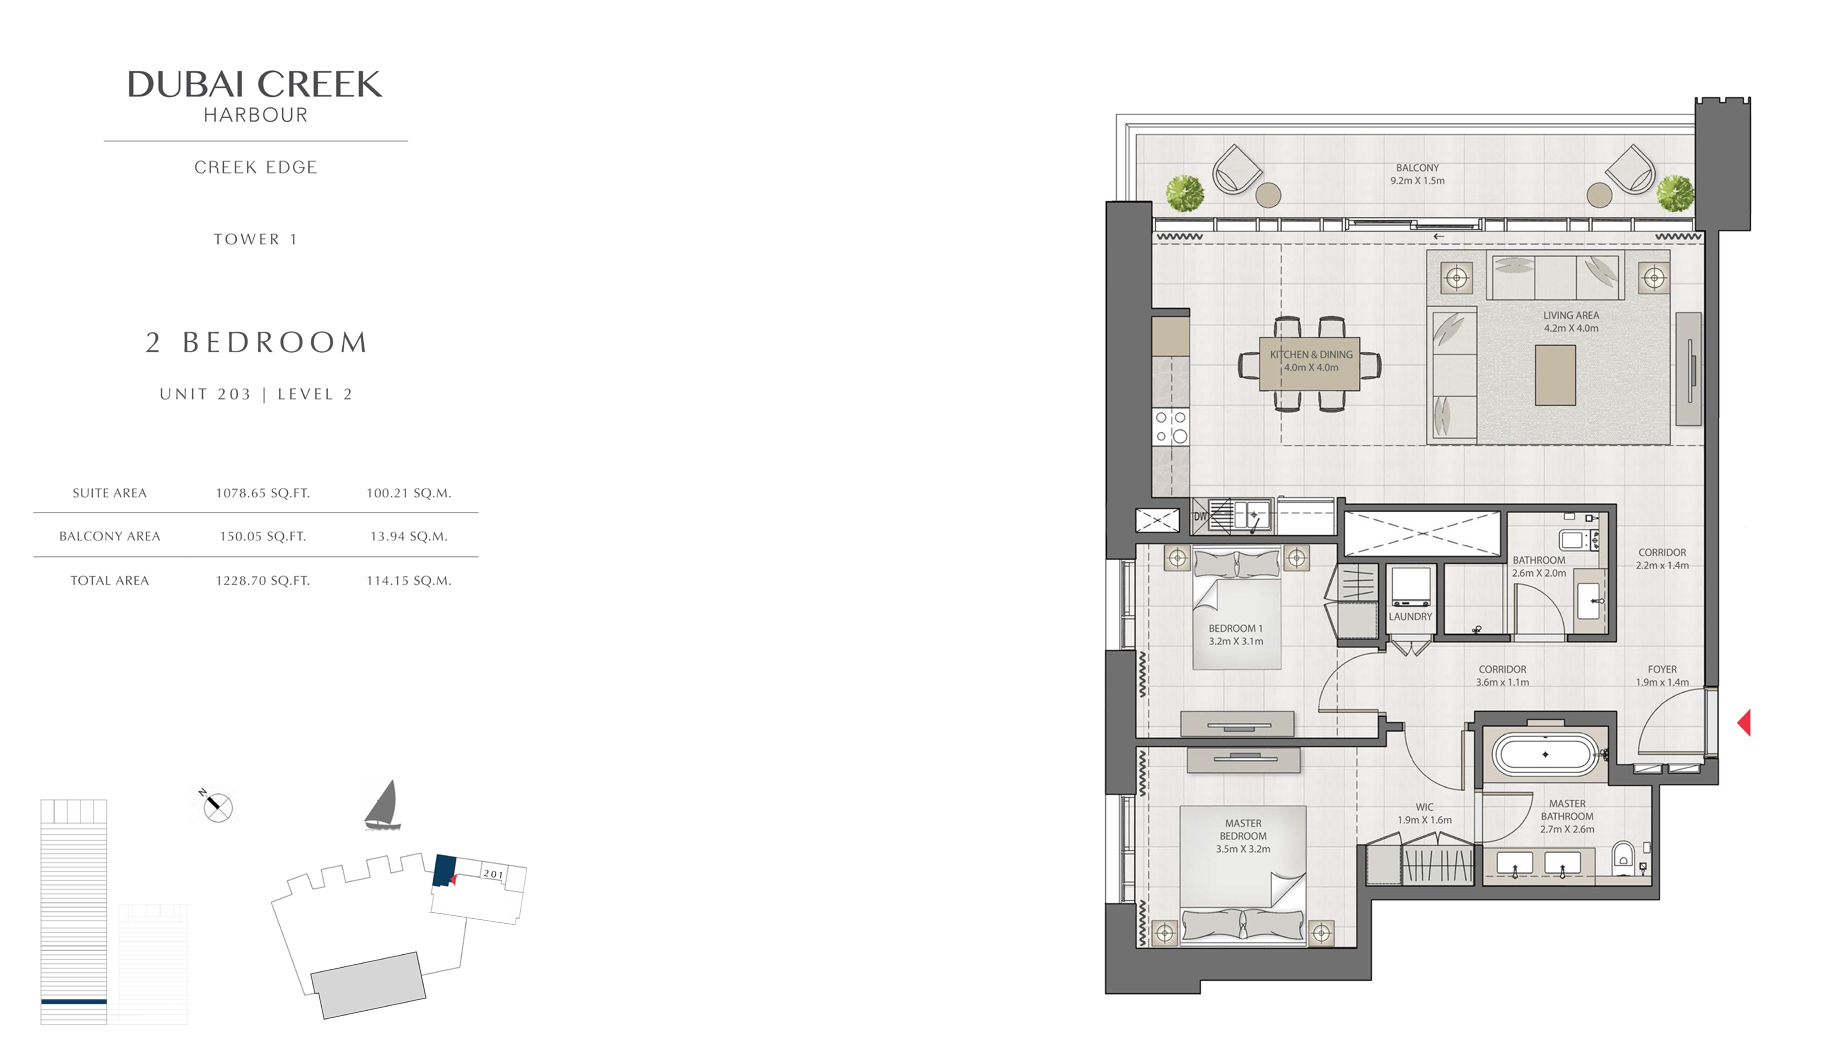 2 Bedroom Tower 1 Unit 203 Level 2 Size 1228 sq.ft